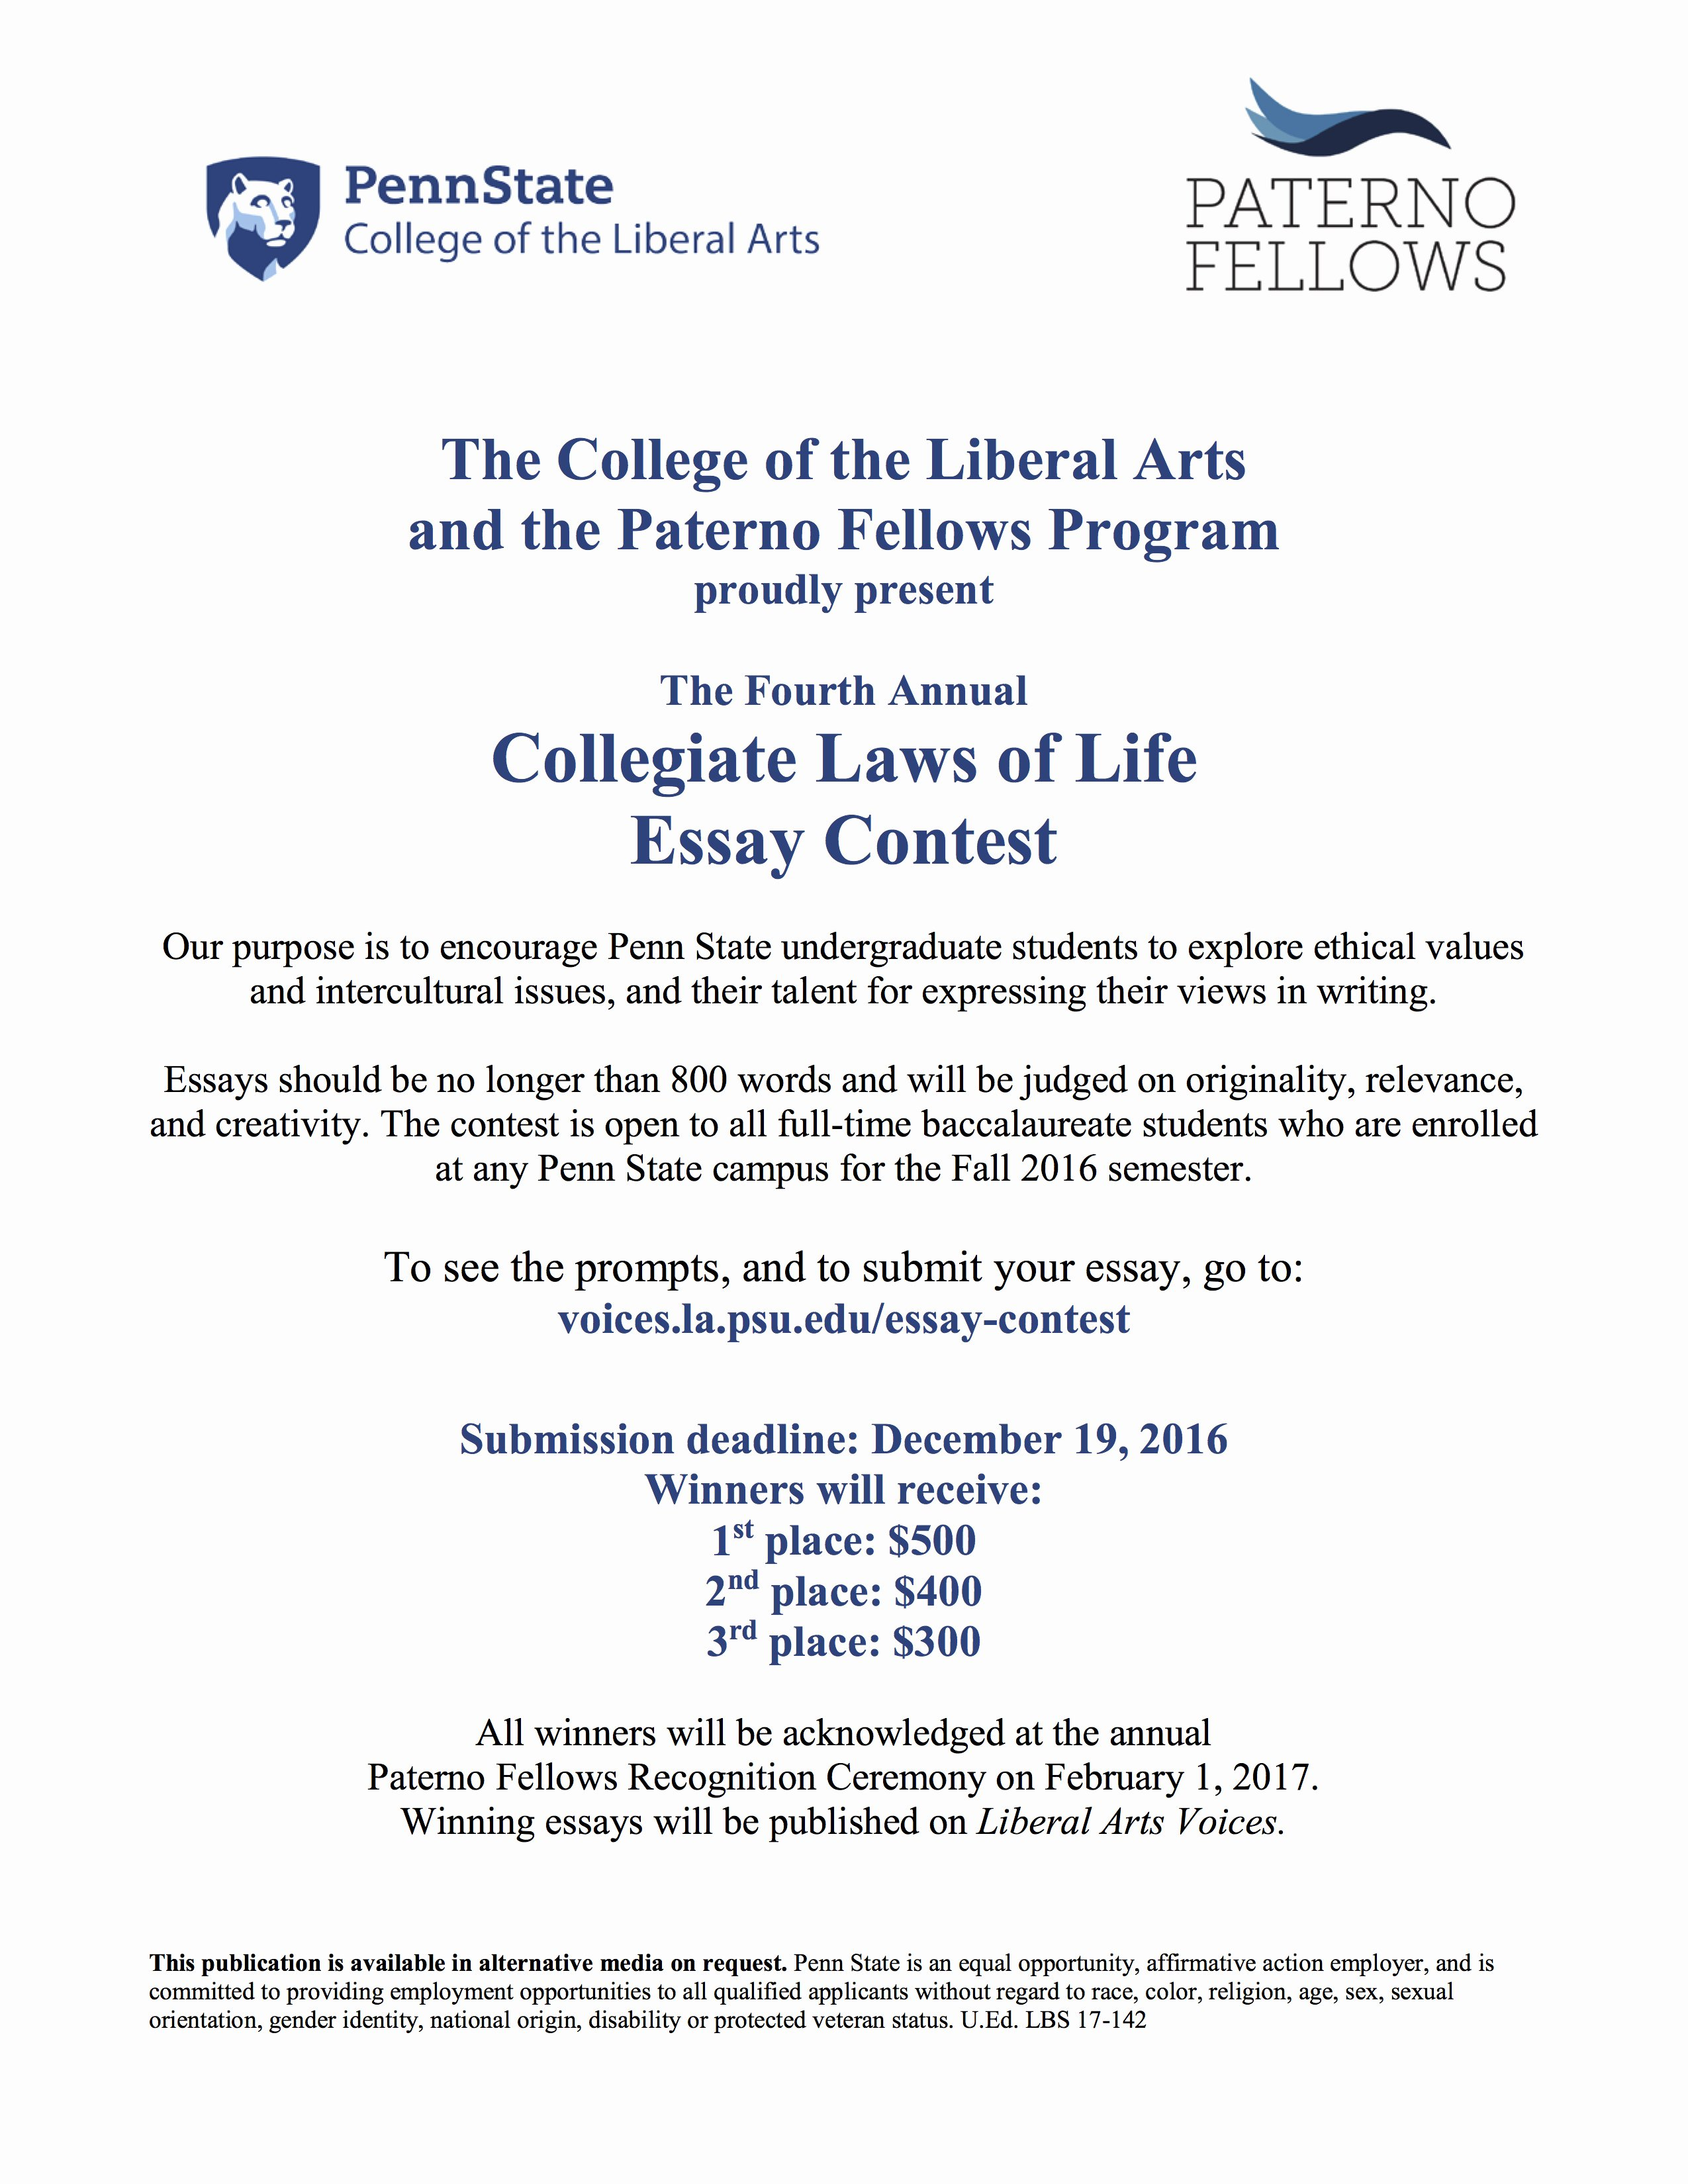 Cover Letter format Uf Elegant Penn State Admissions Essay Cover Letter Honors College